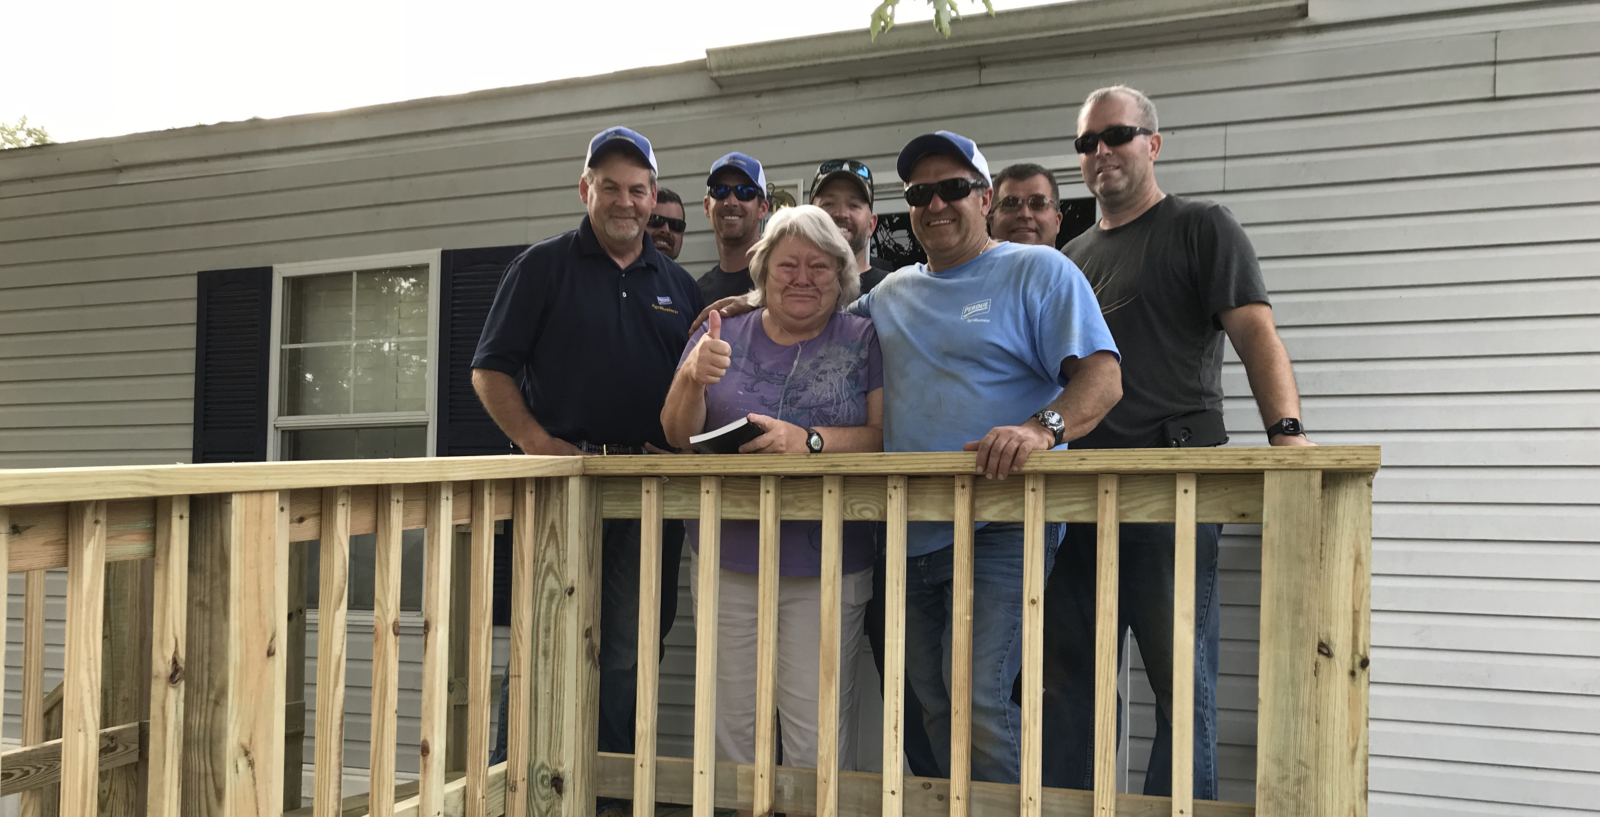 Volunteers give a day to help a neighbor in need.